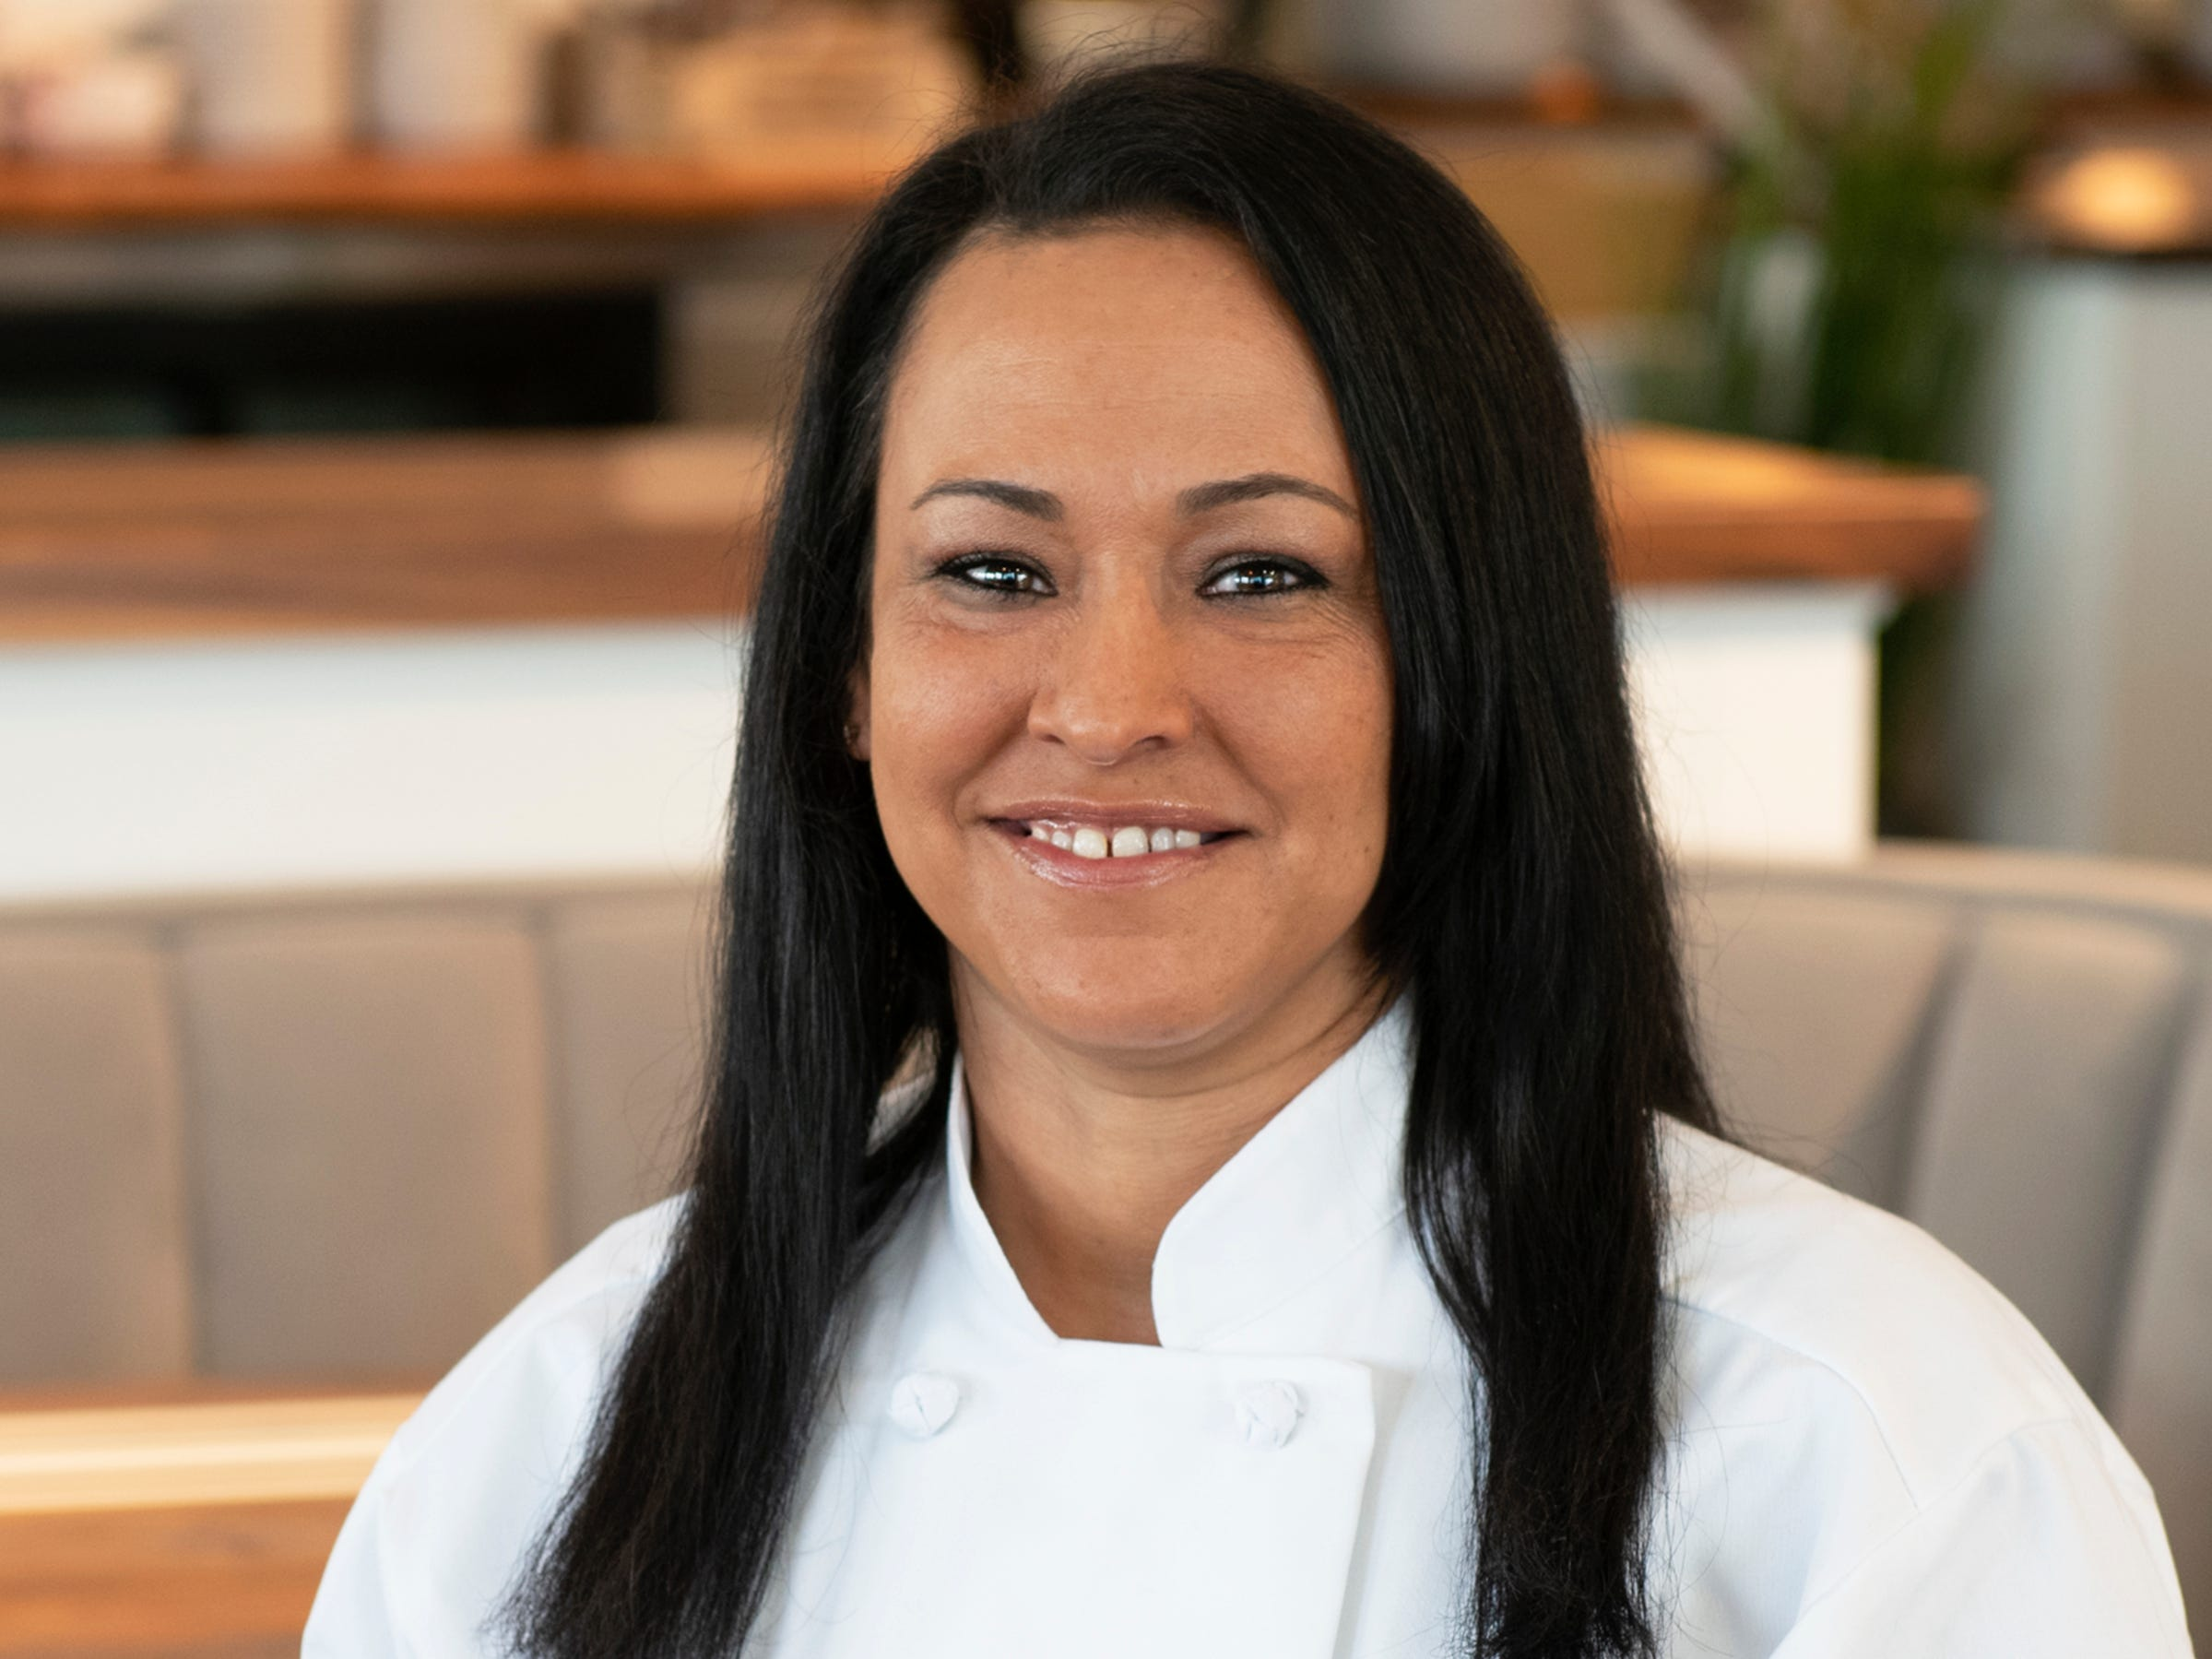 Nina Maddox is the new executive chef at Crust & Craft, a wood-fired pizzeria in the Midway Shopping Center in Rehoboth. It's owned by SoDel Concepts.